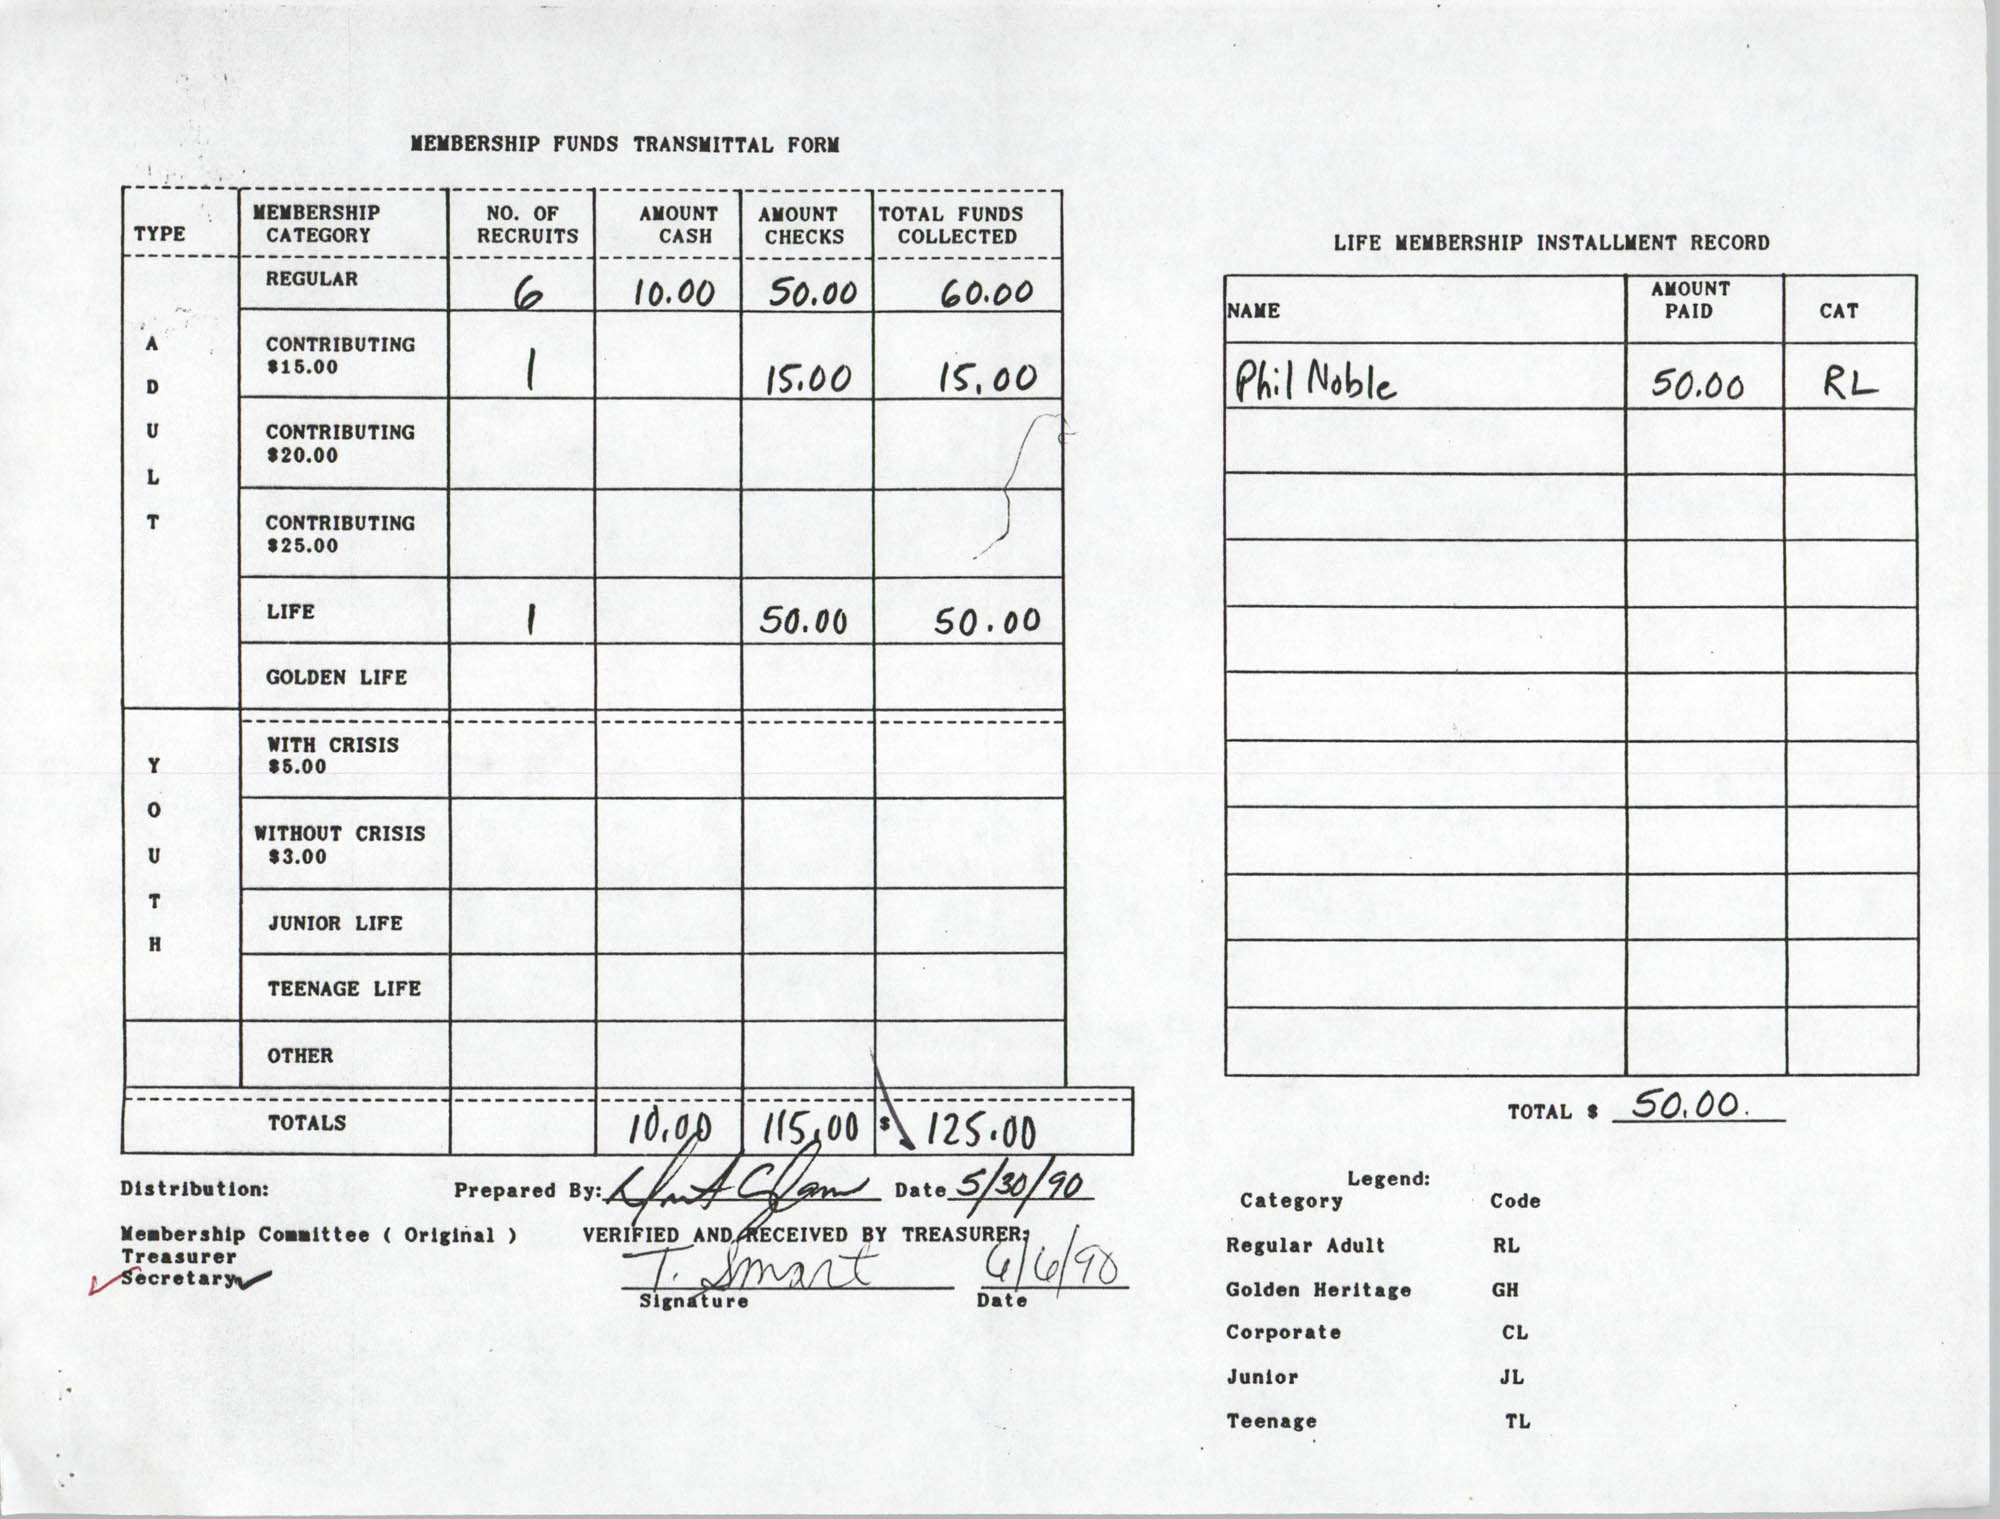 Charleston Branch of the NAACP Membership Funds Transmittal Form, June 1990, Page 1